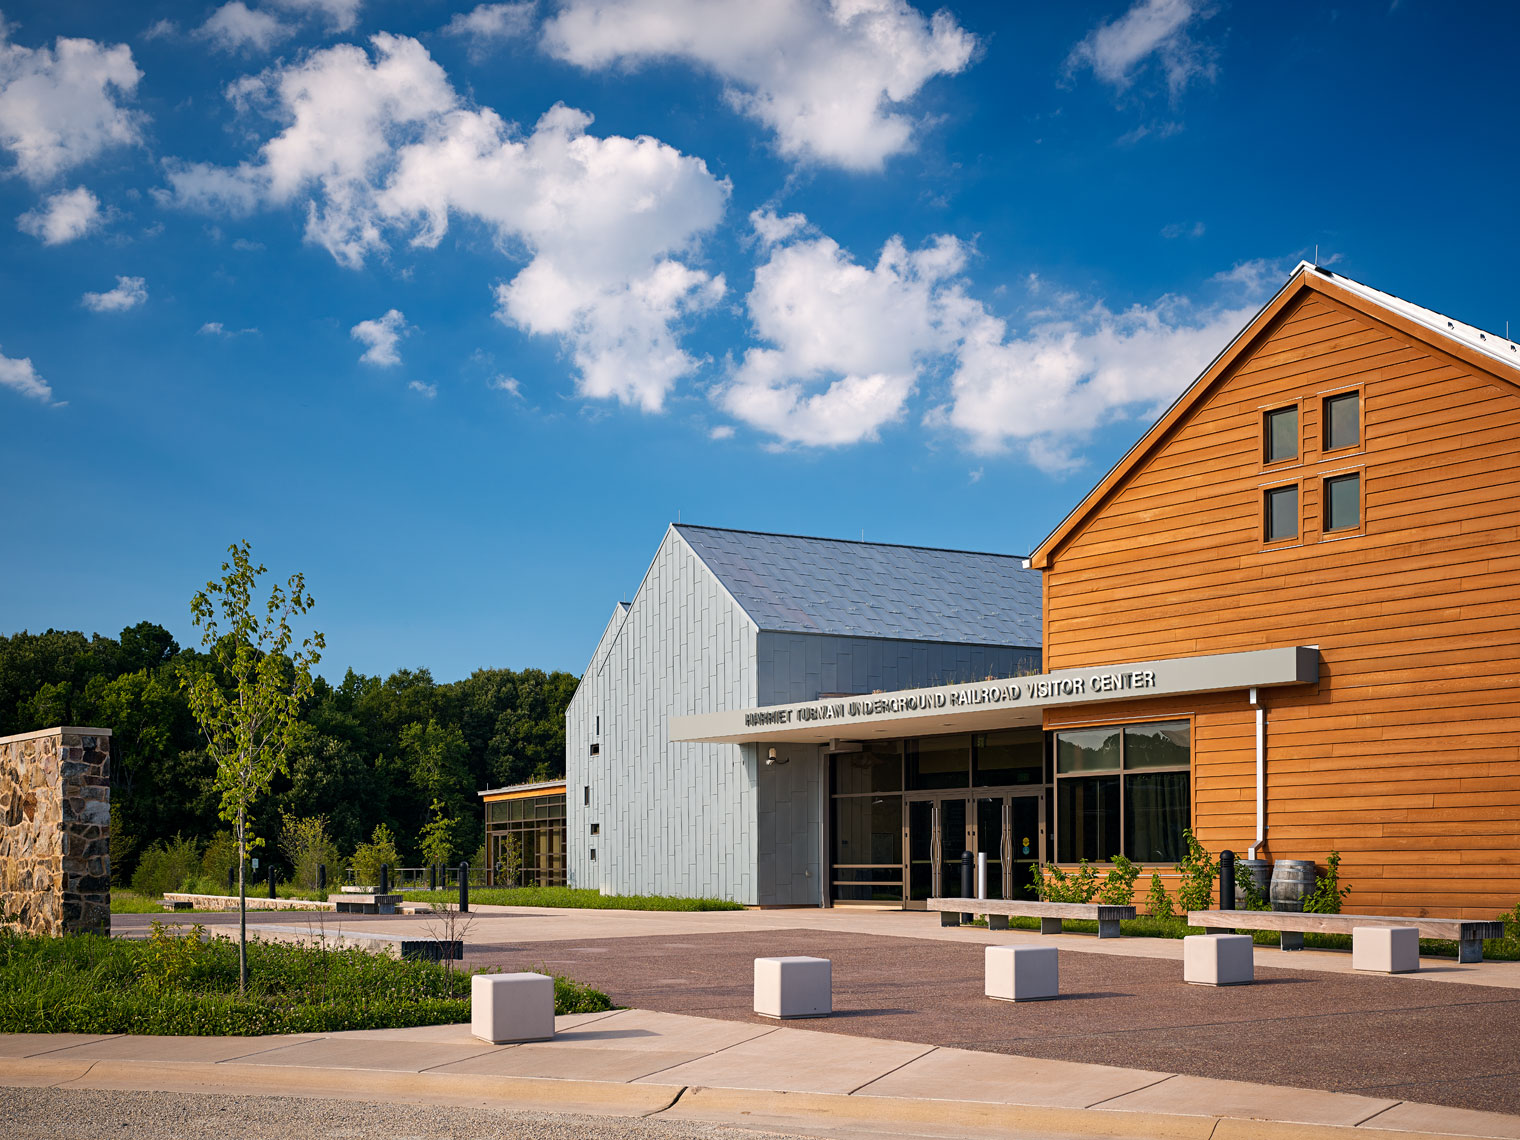 Harriet-Tubman-Visitor-Center_ext-b_WEB